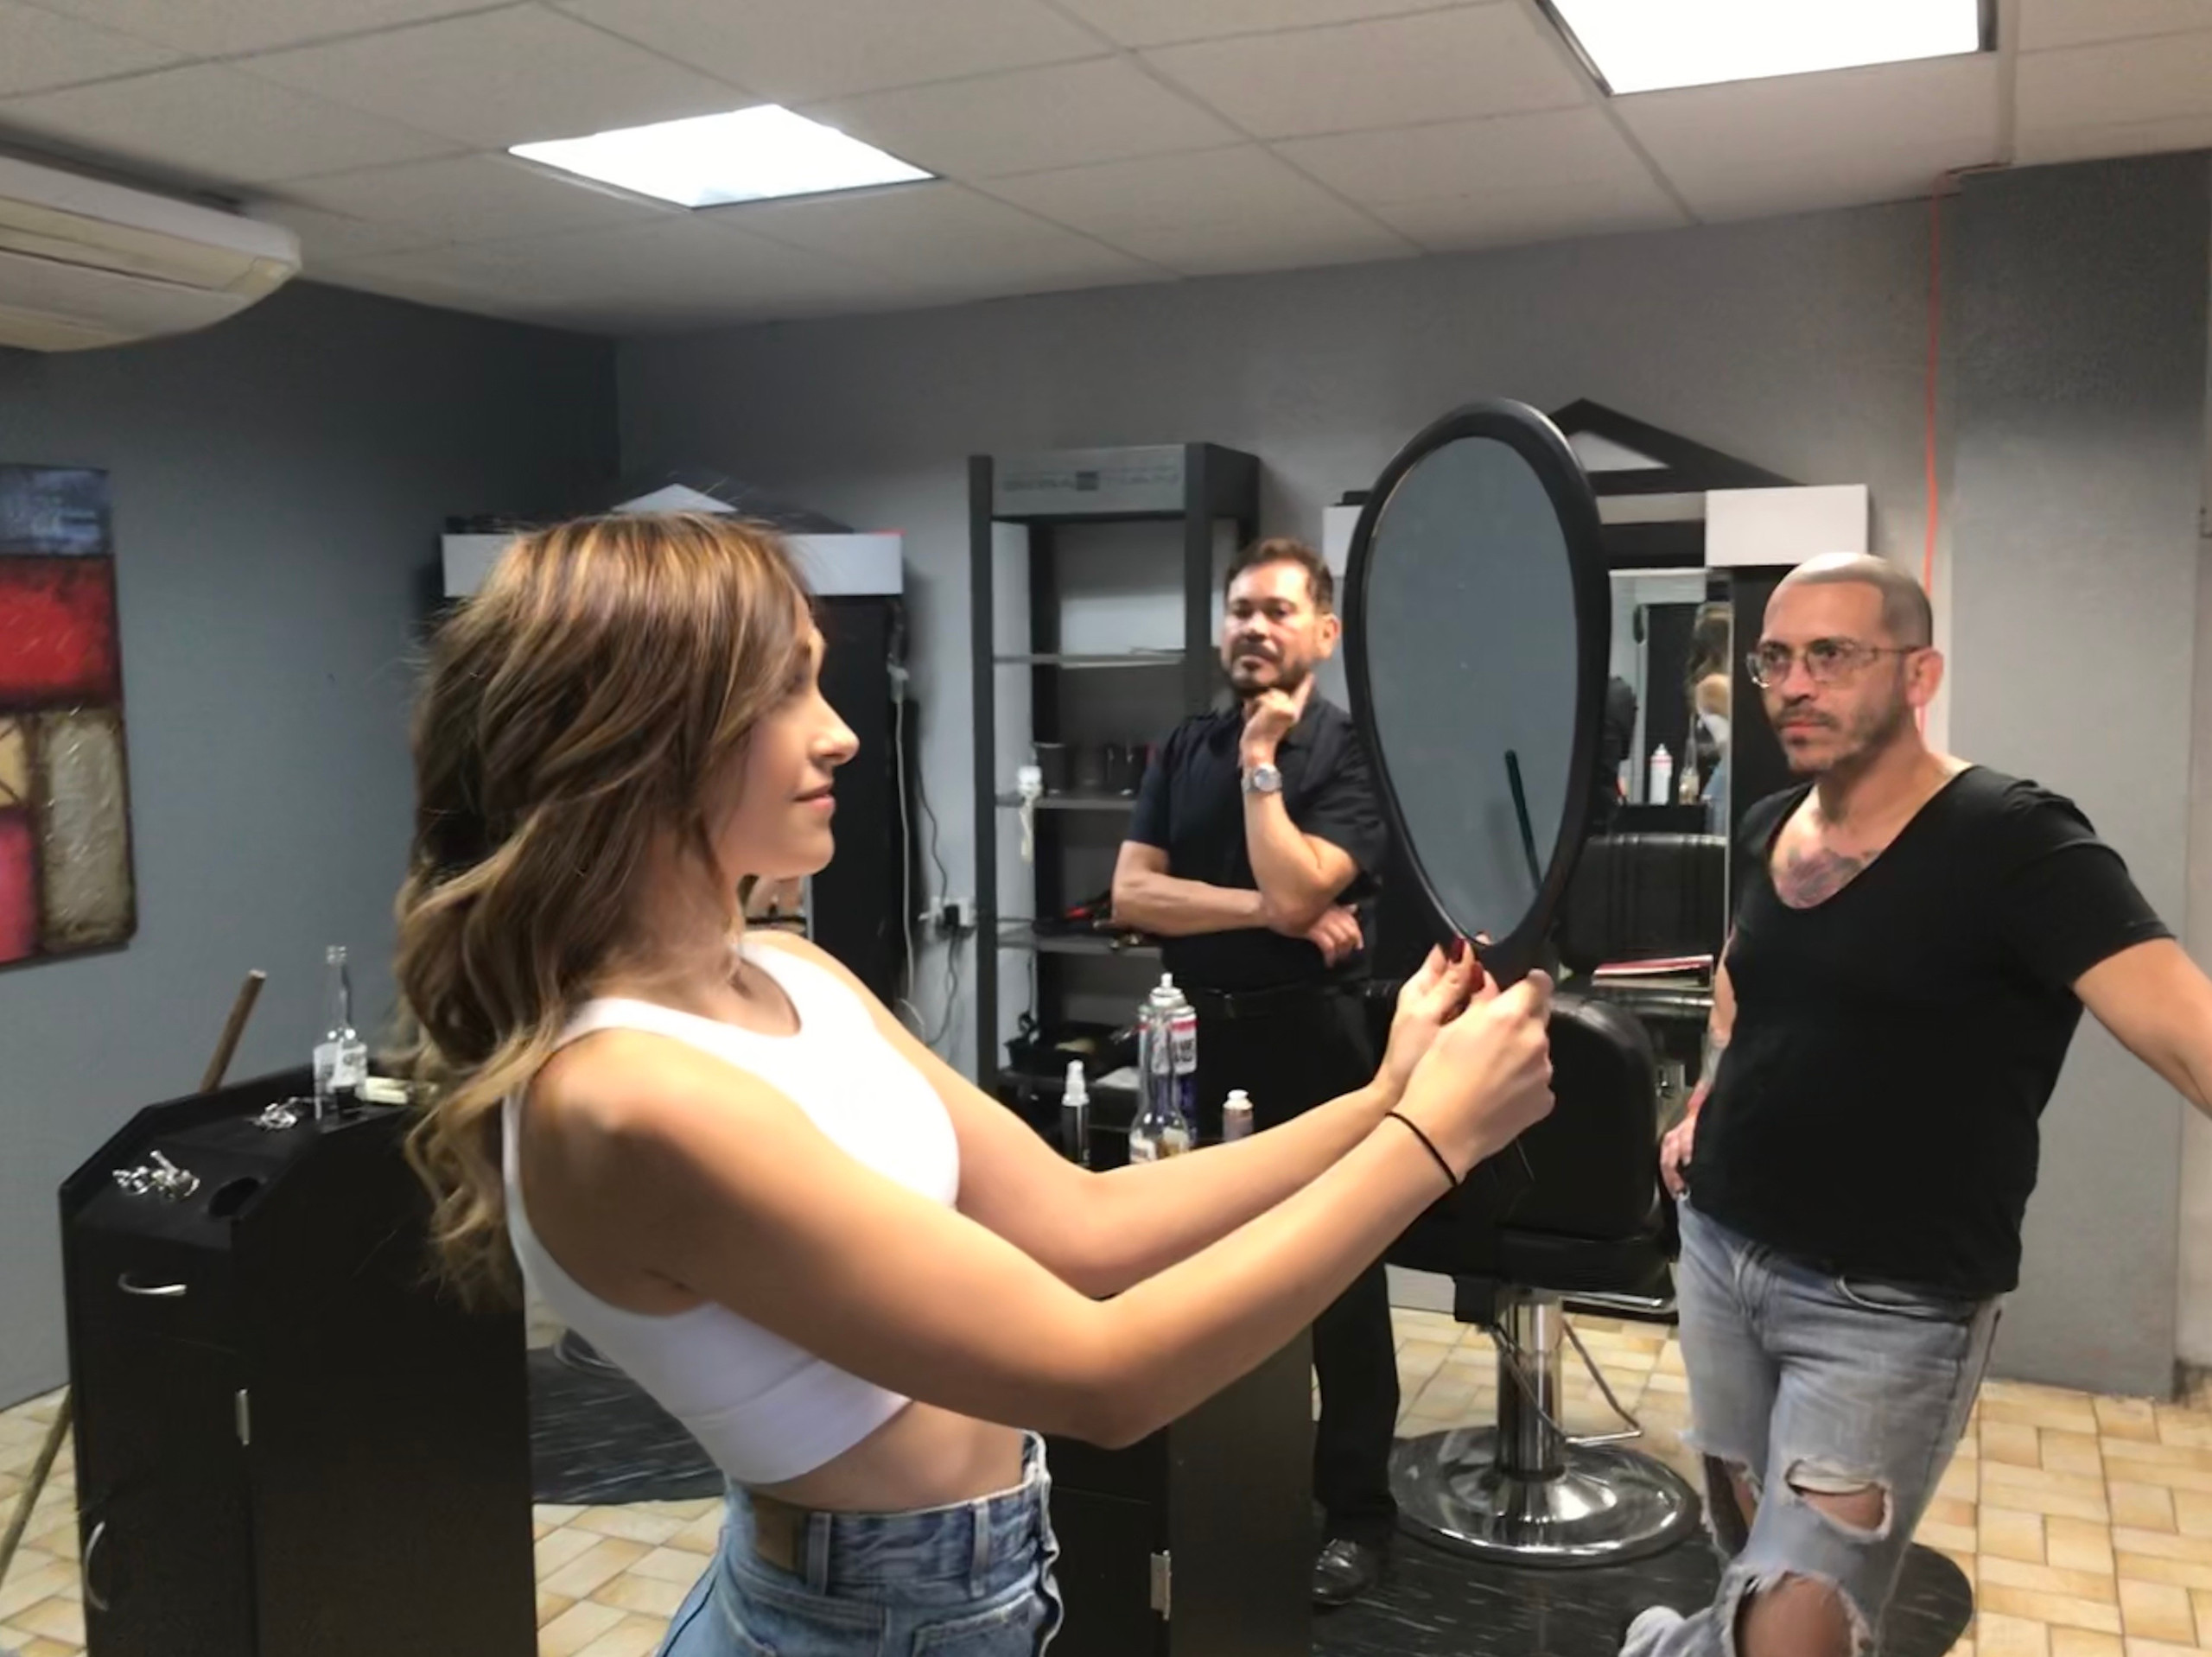 Woman looks at hair style in mirror